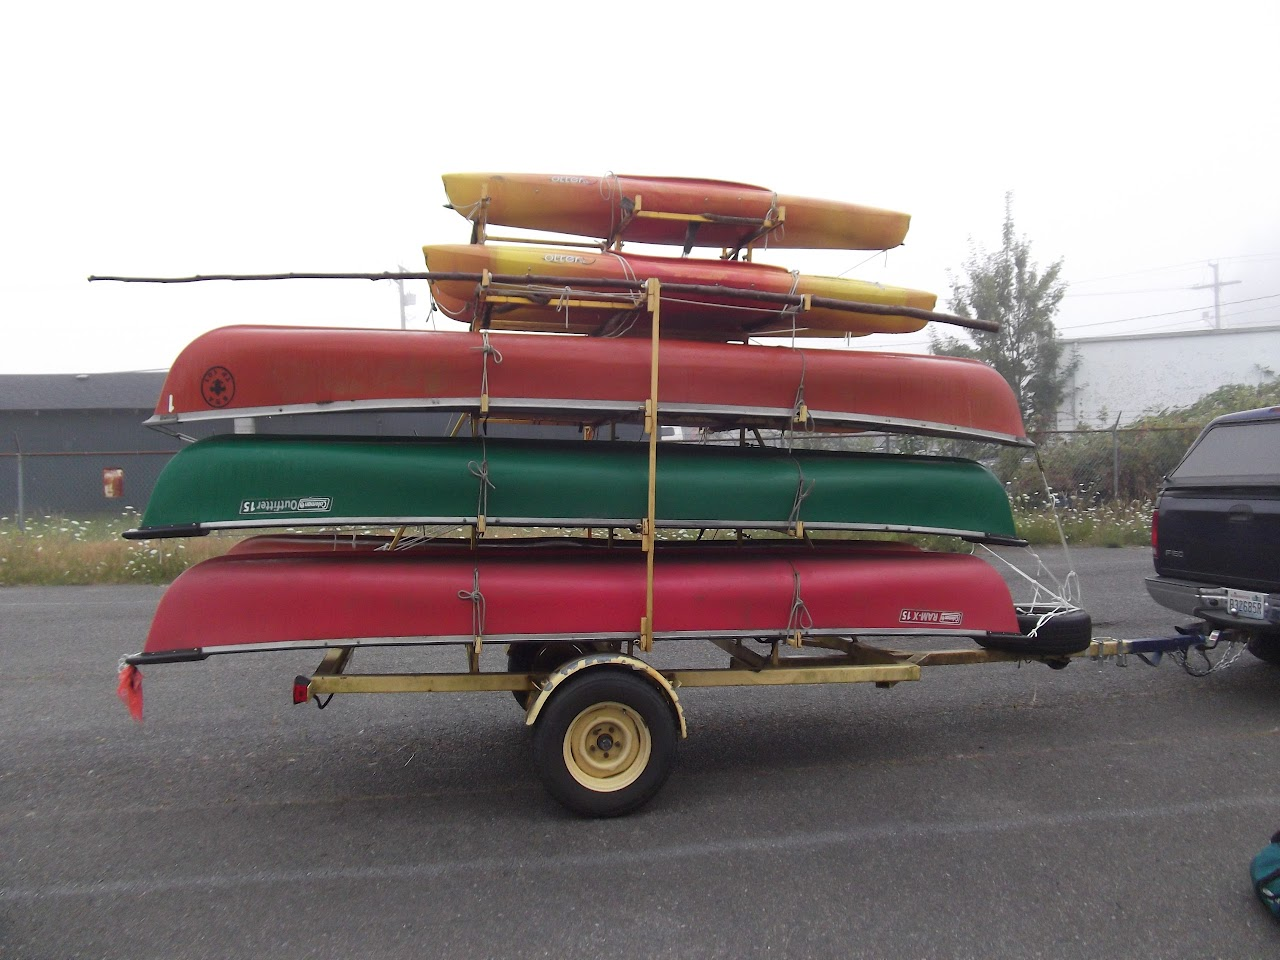 Canoes ready to go